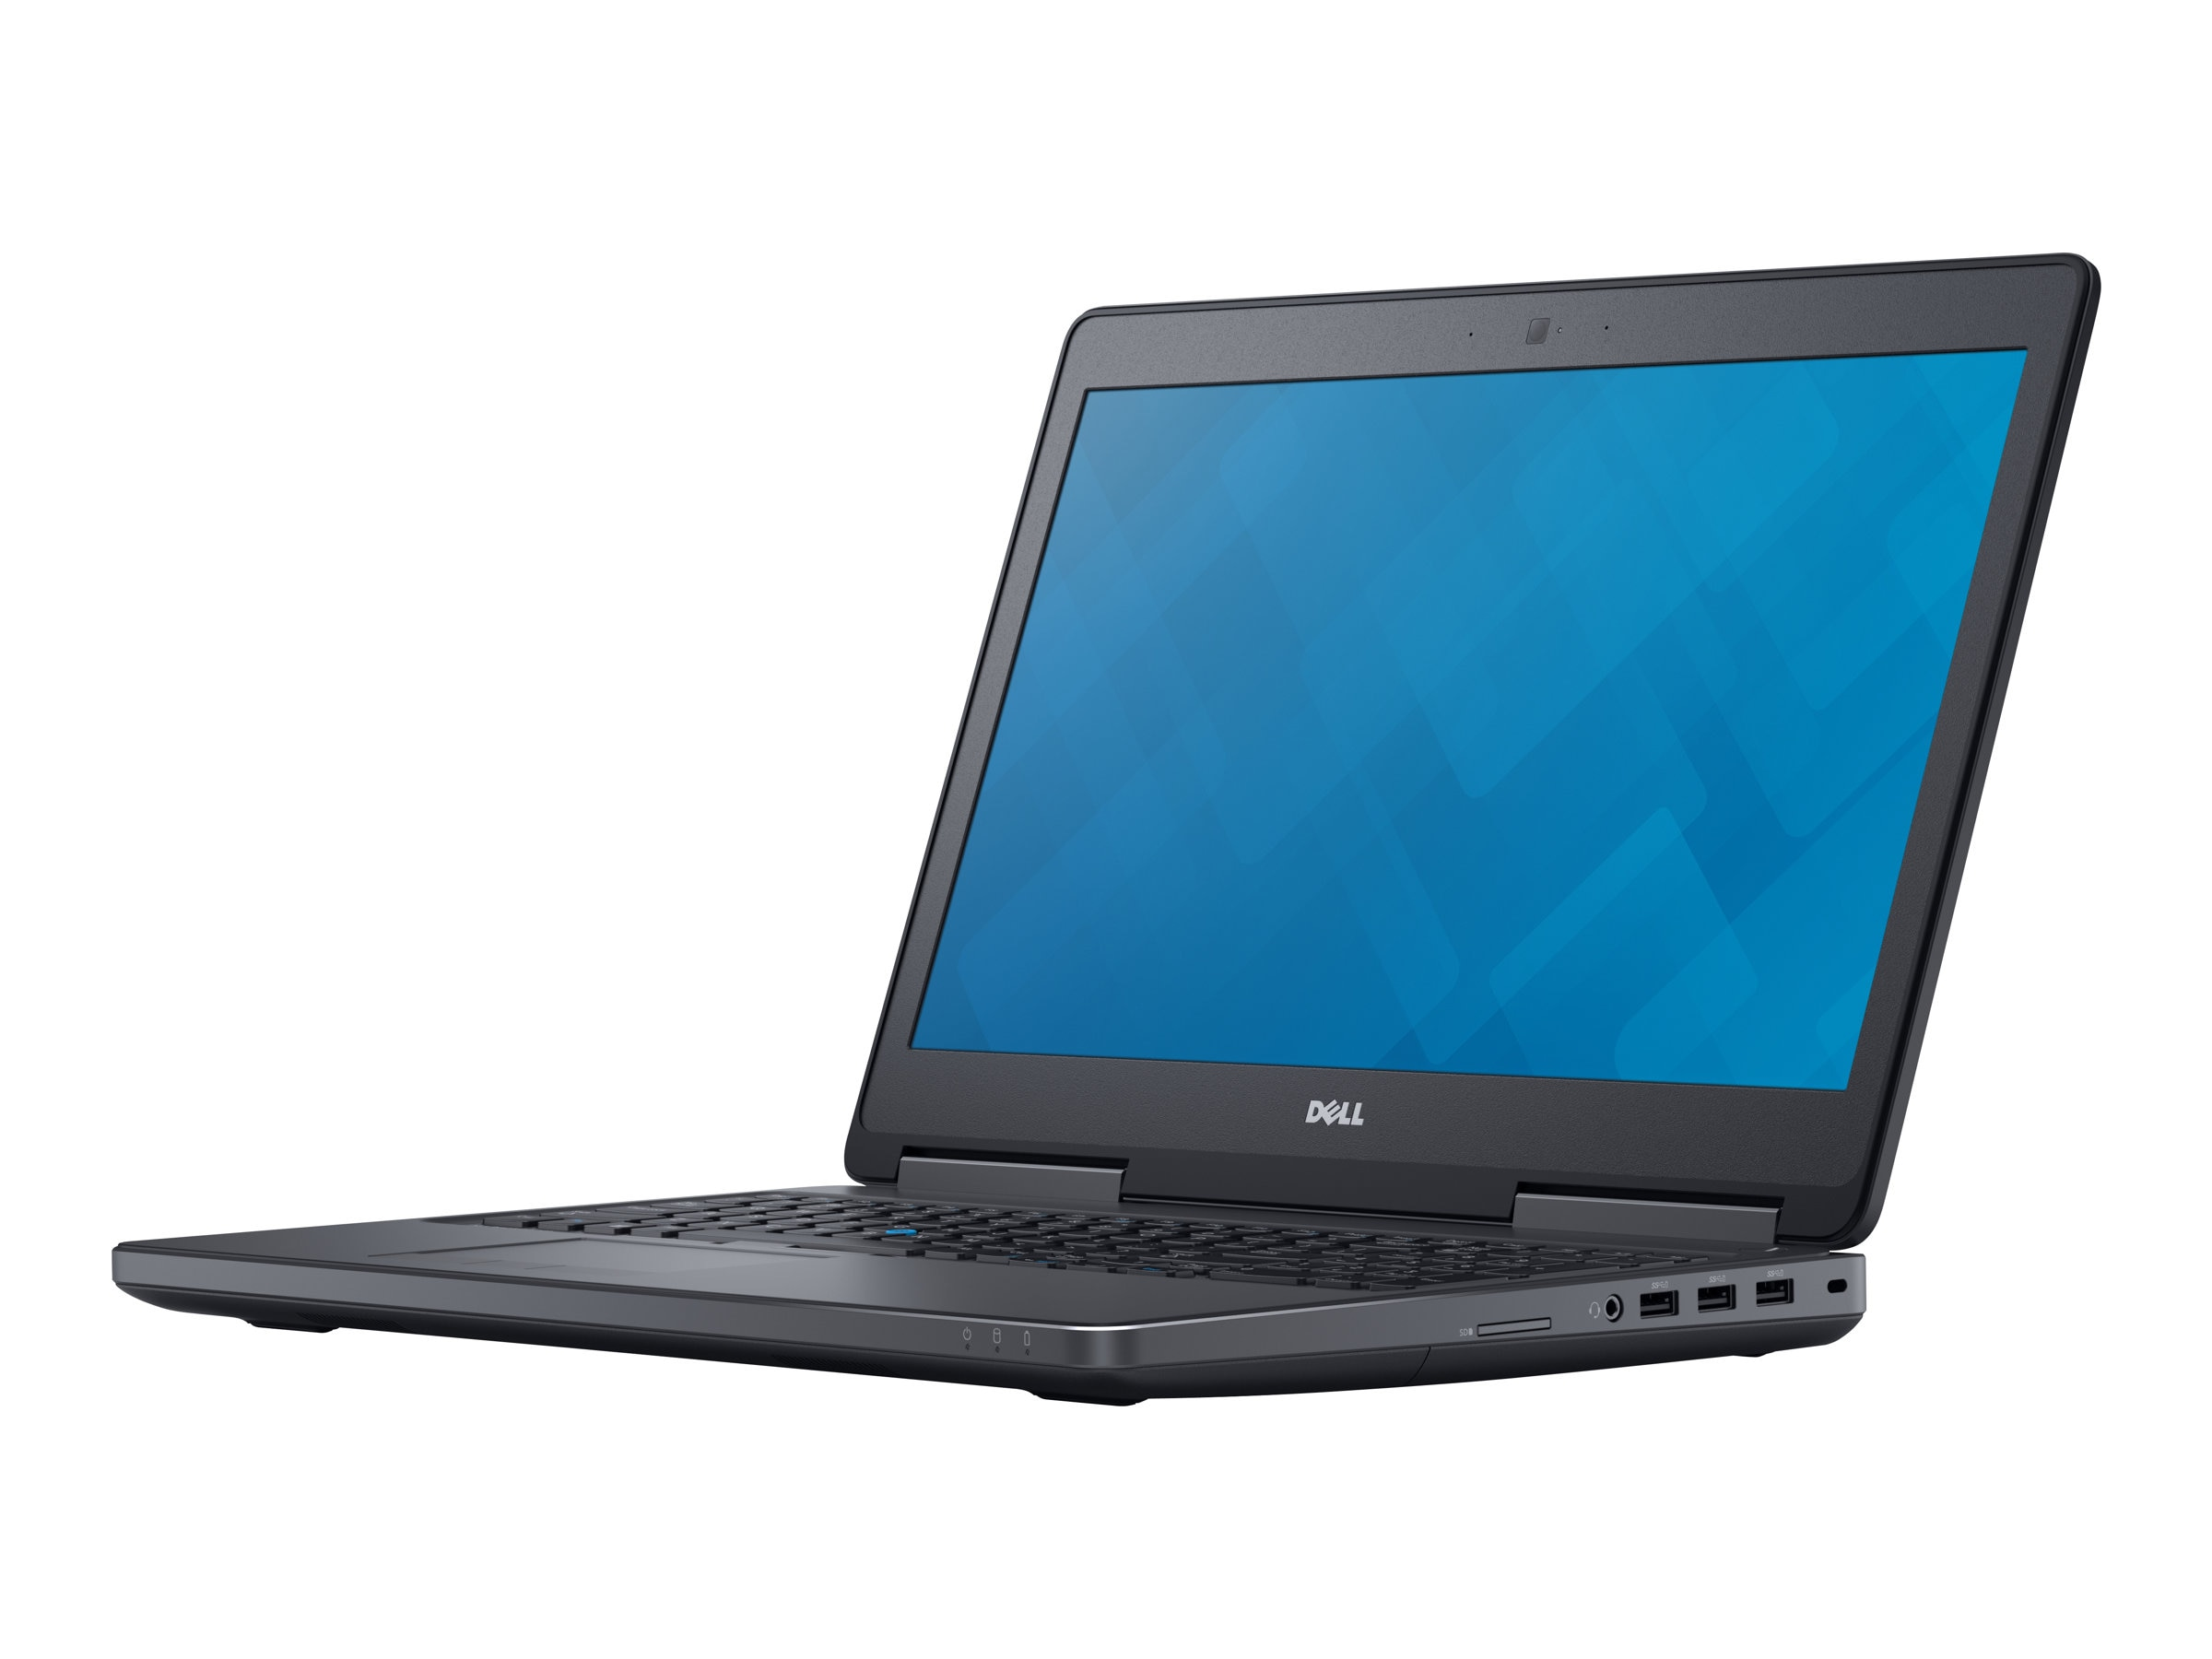 Dell Precision 7510 Core i7-6820HQ 2.7GHz 8GB 500GB M1000M ac BT WC 6C 15.6 FHD W7P64-W10P